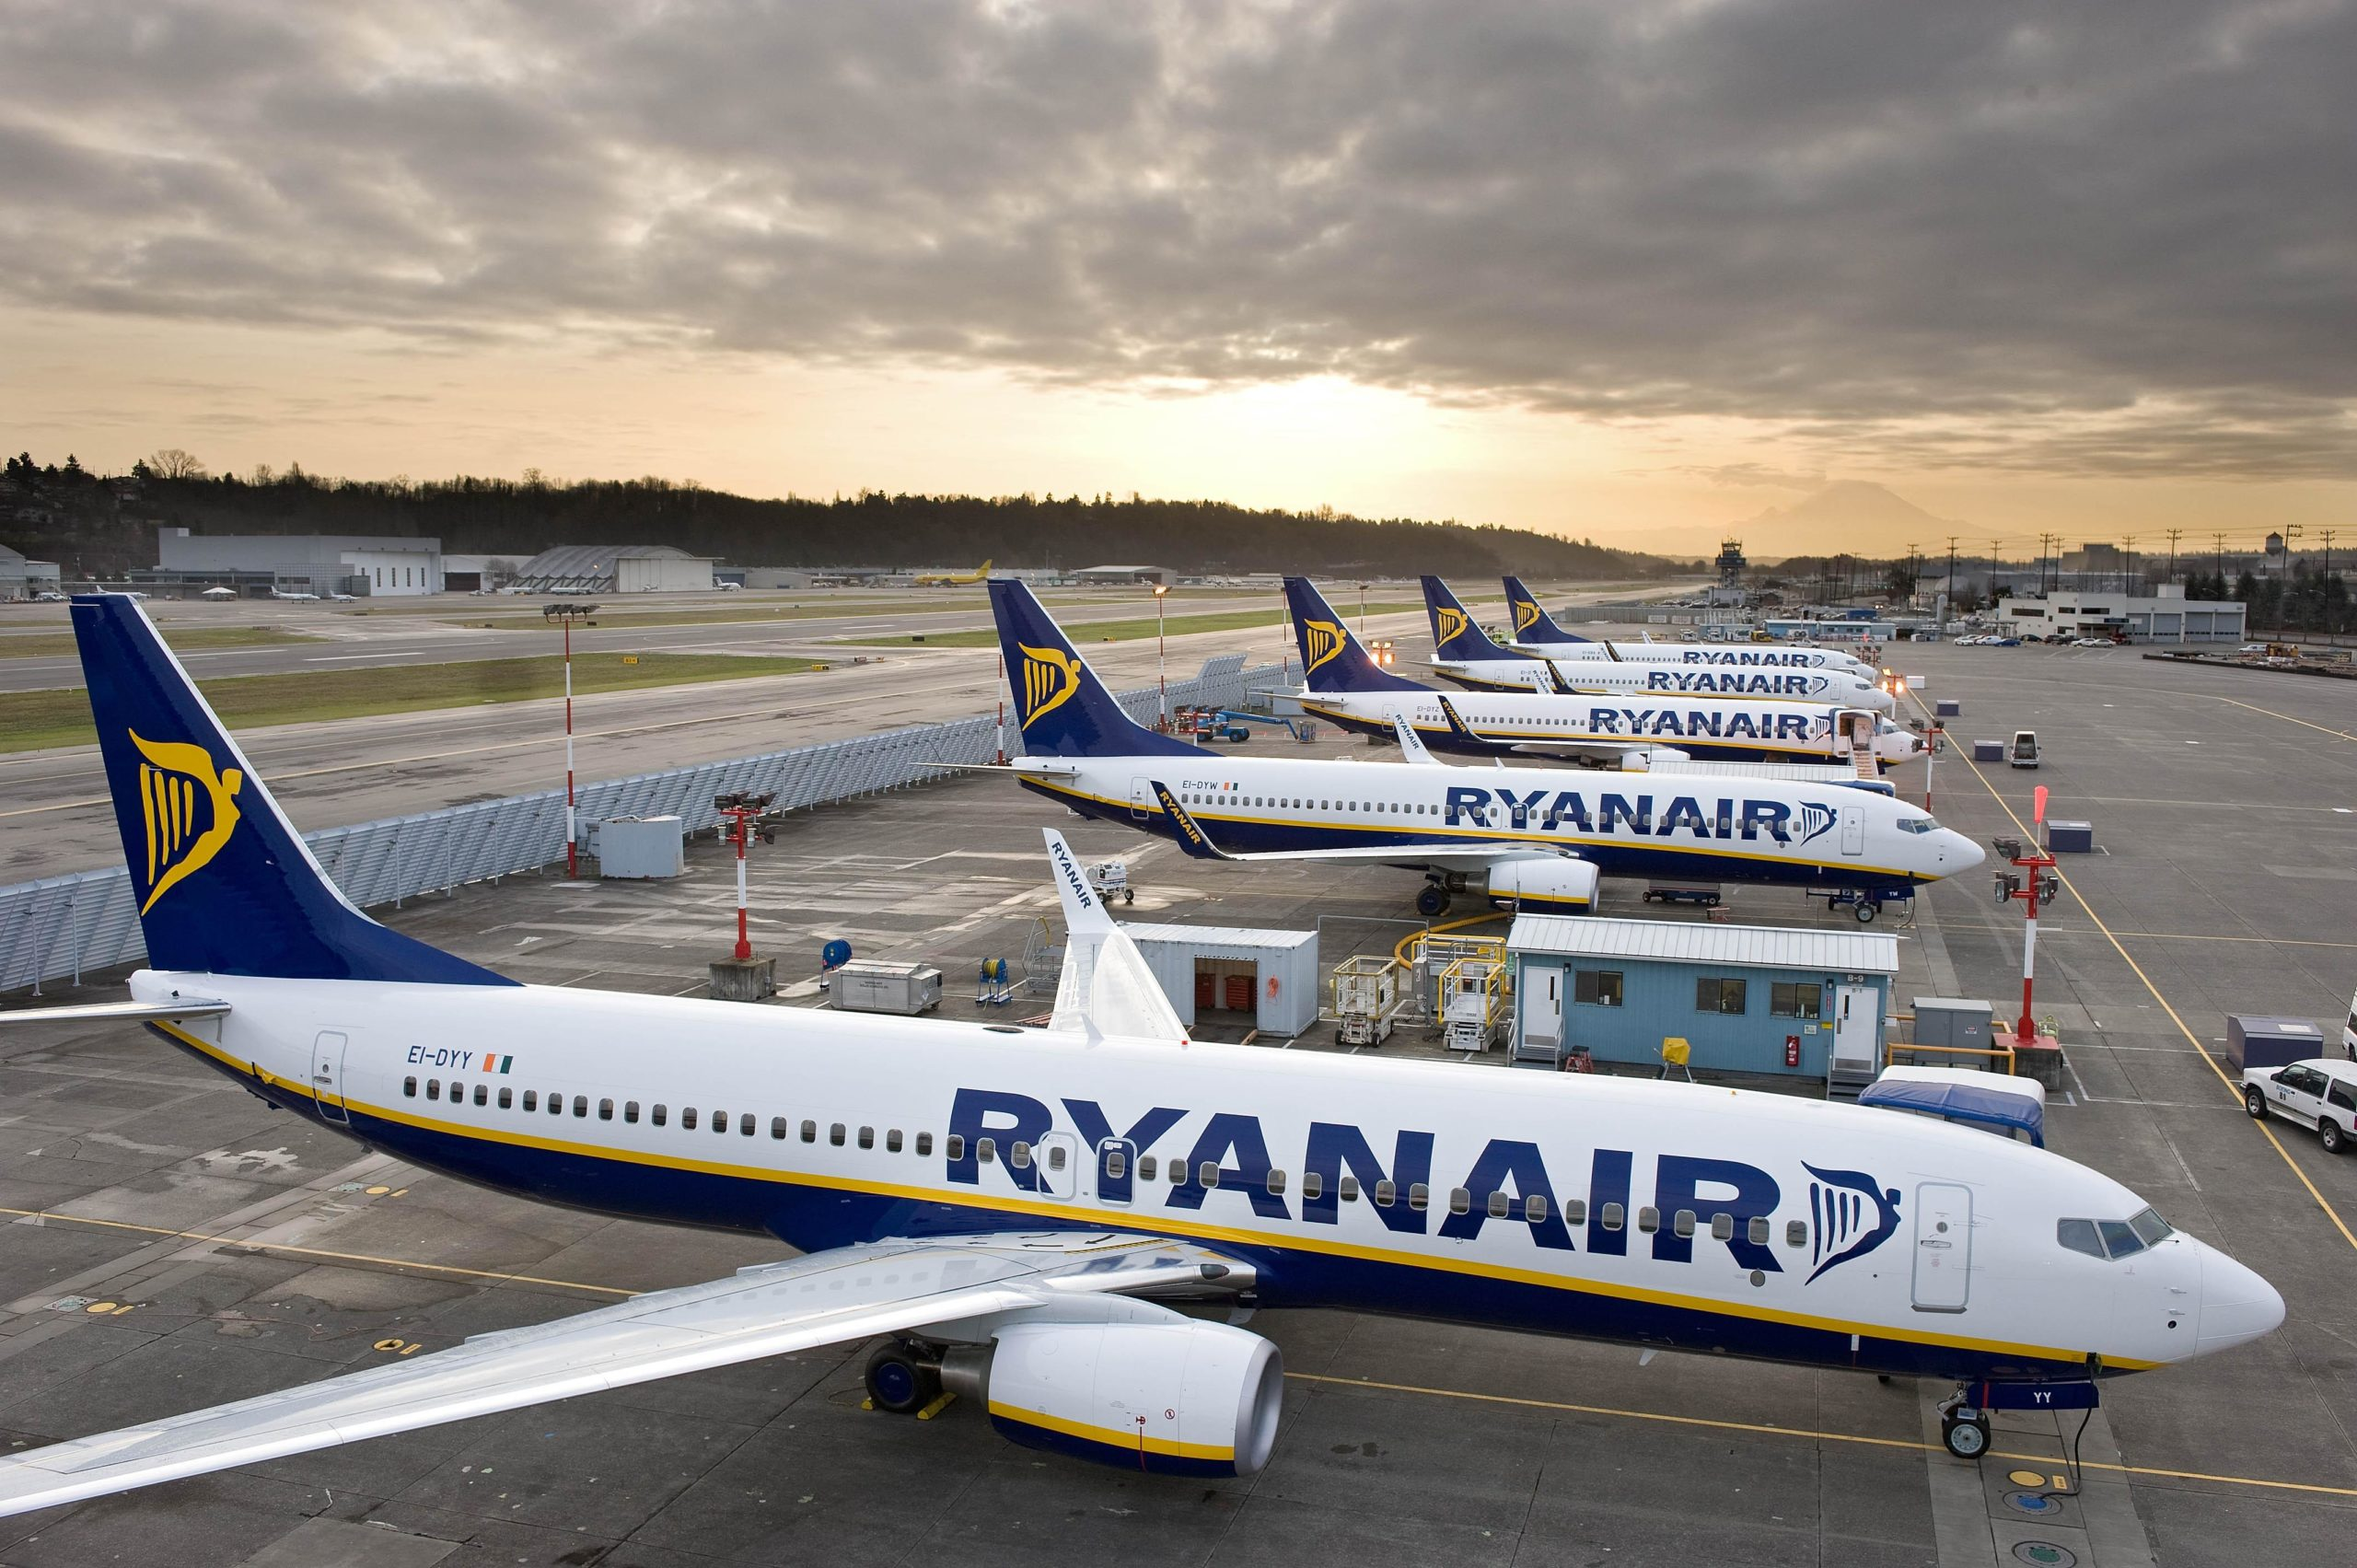 Ryanair to continue cancelling flights until March 2018, affecting up to 400,000 passengers